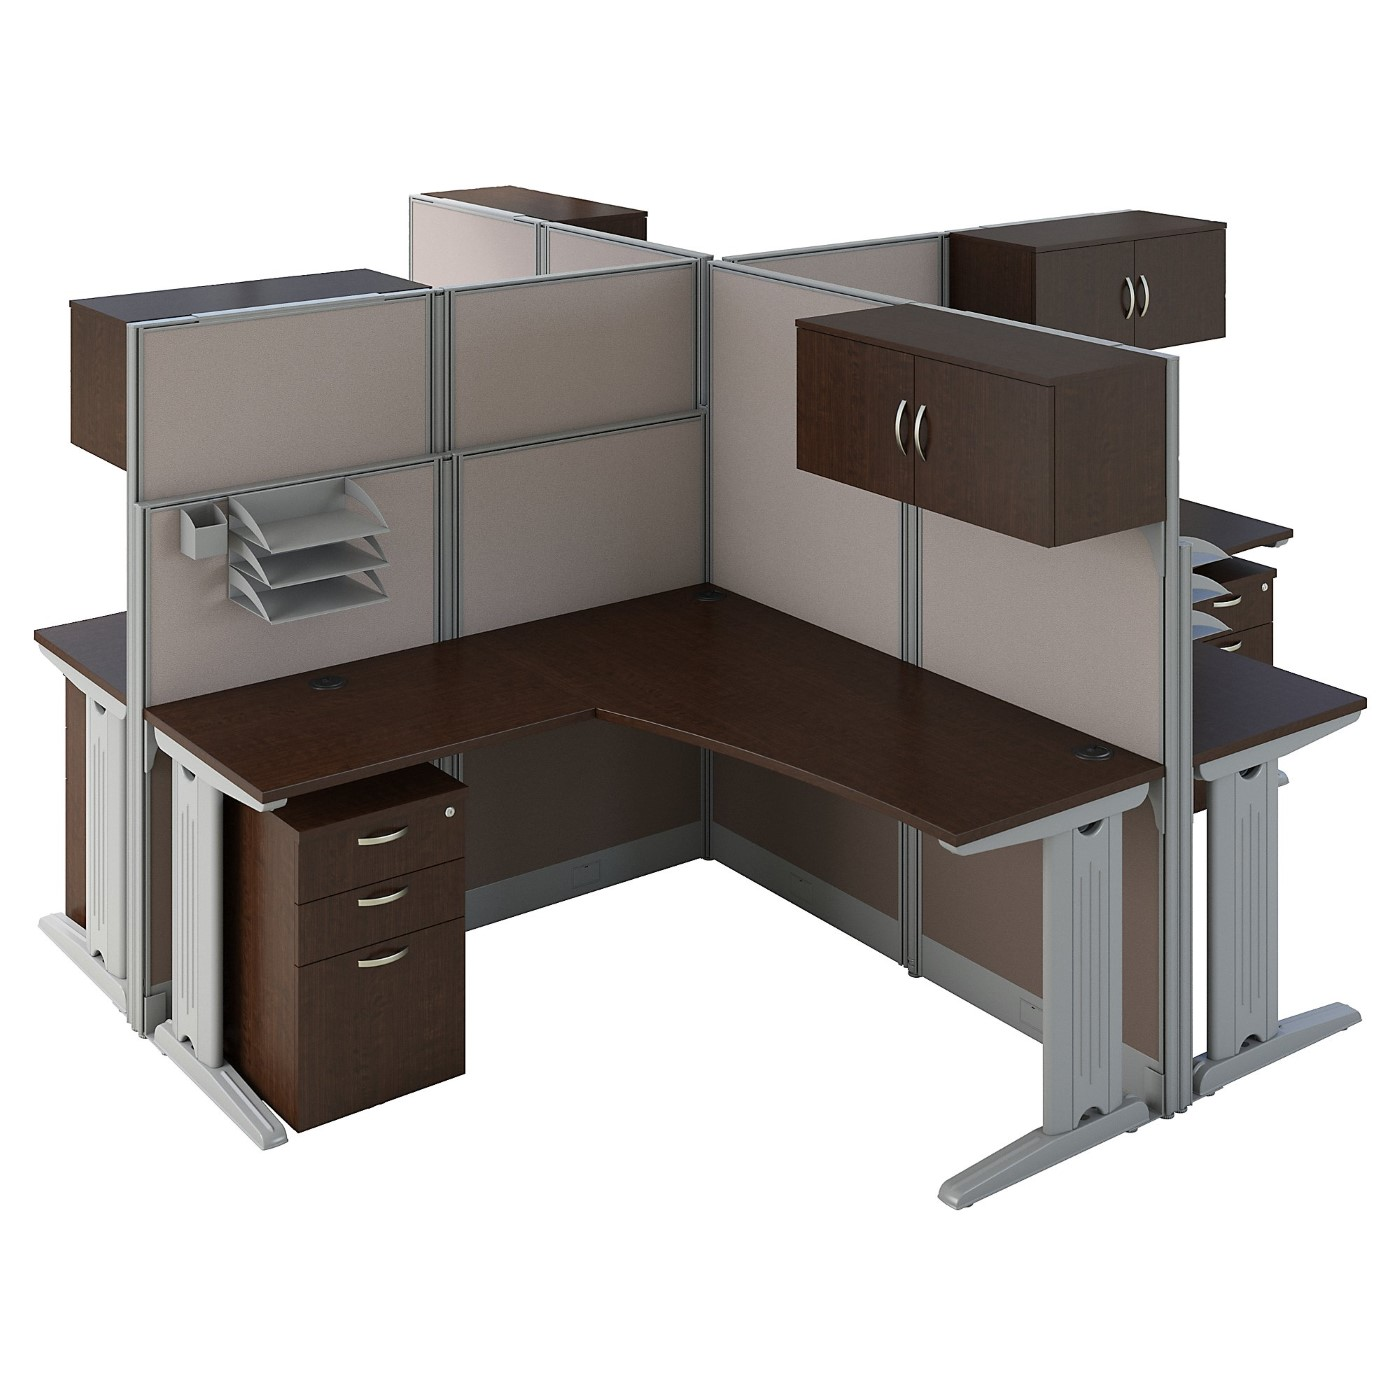 BUSH BUSINESS FURNITURE OFFICE IN AN HOUR 4 PERSON L SHAPED CUBICLE WORKSTATIONS. FREE SHIPPING SALE DEDUCT 10% MORE ENTER '10percent' IN COUPON CODE BOX WHILE CHECKING OUT. ENDS 5-31-20.